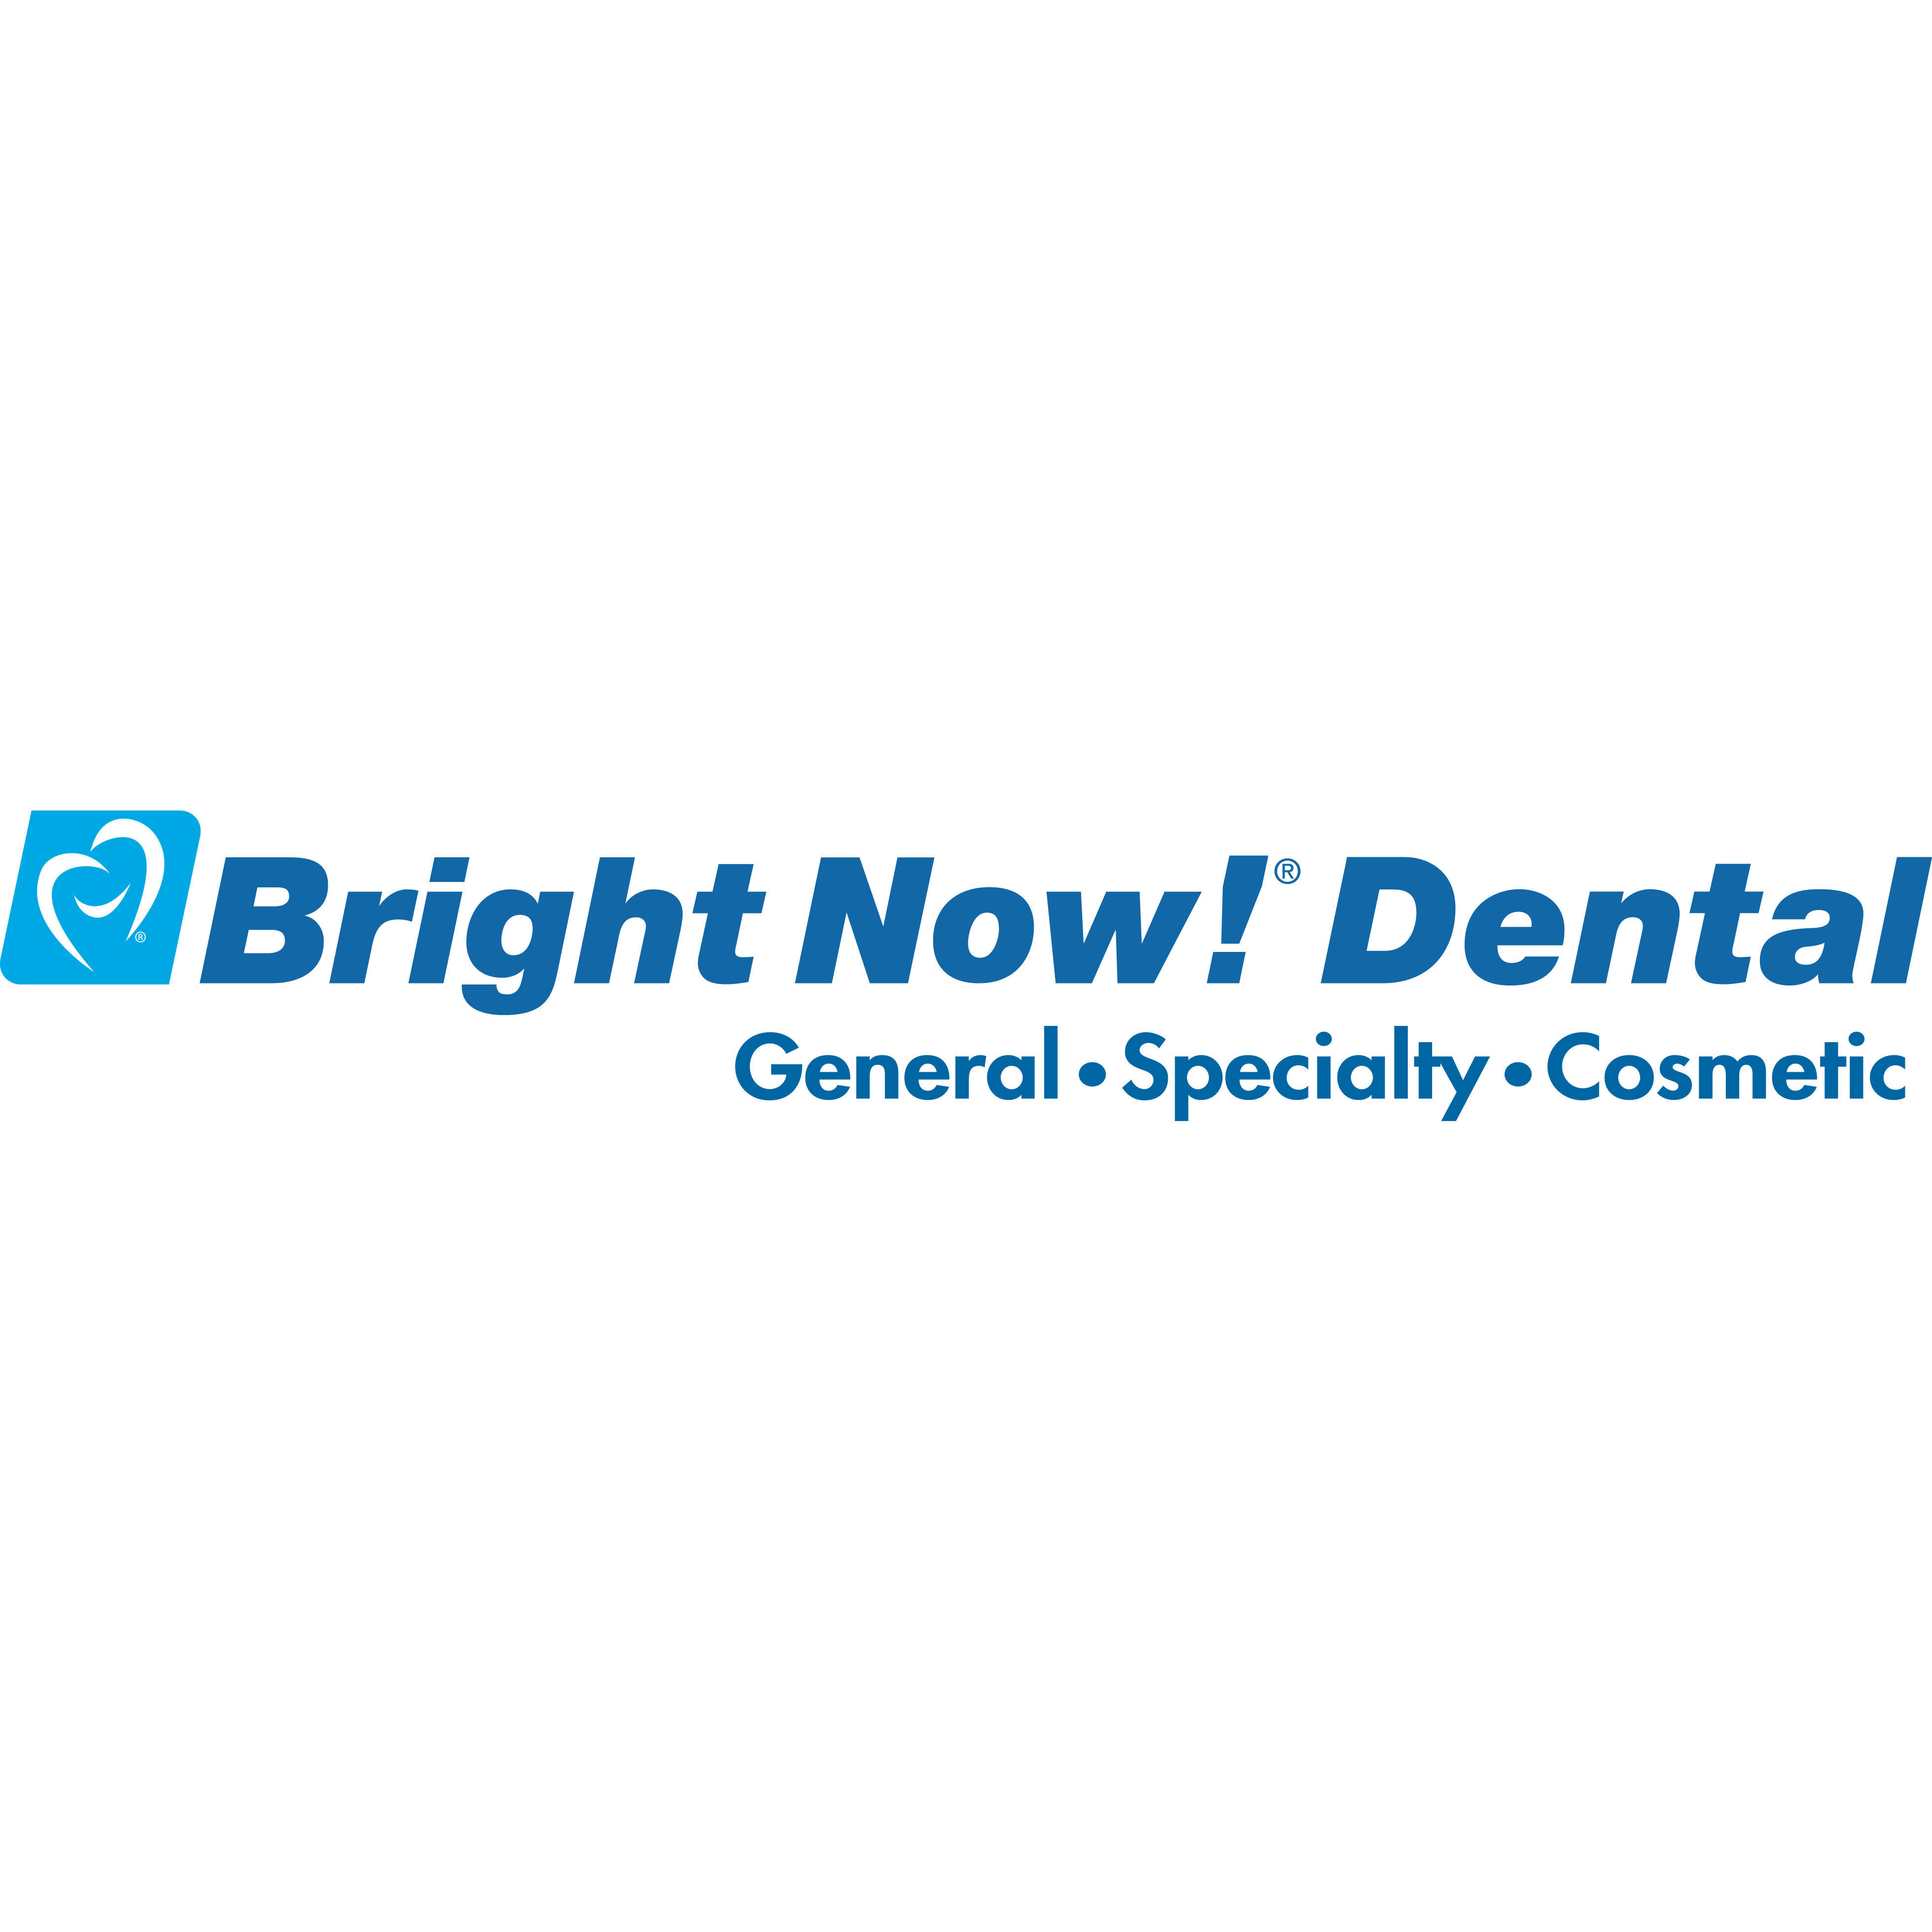 Bright Now! Dental image 5